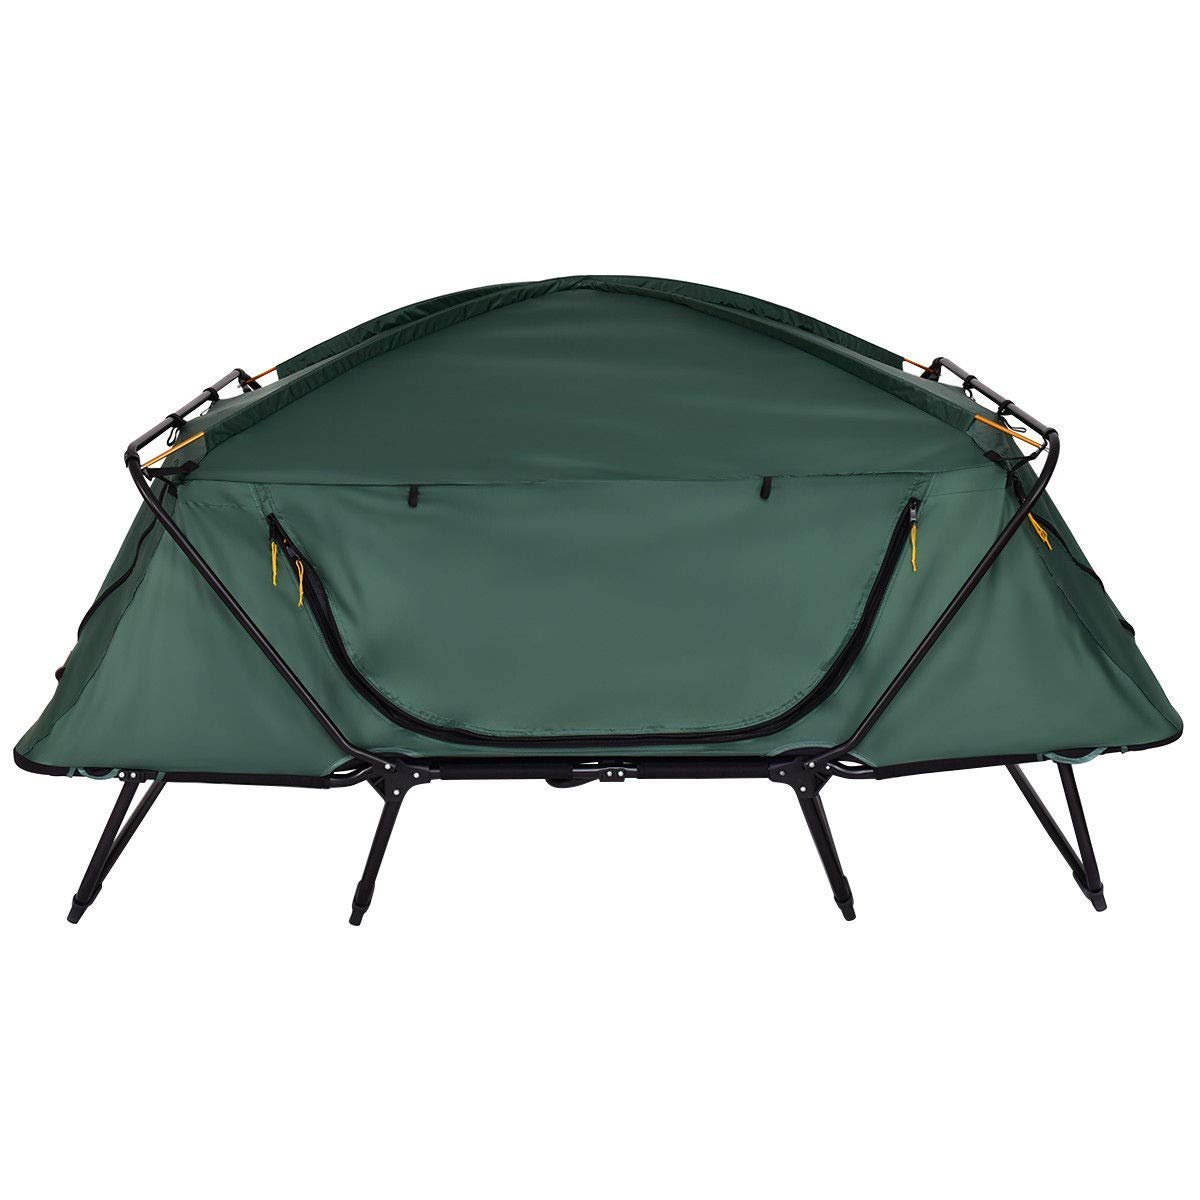 BeUniqueToday 2 Person Waterproof Folding Camping Tent with Carry Bag, Lightweight Aluminum Frame Waterproof Folding Camping Tent, Quick and Easy Setting 2 Person Waterproof Folding Camping Tent